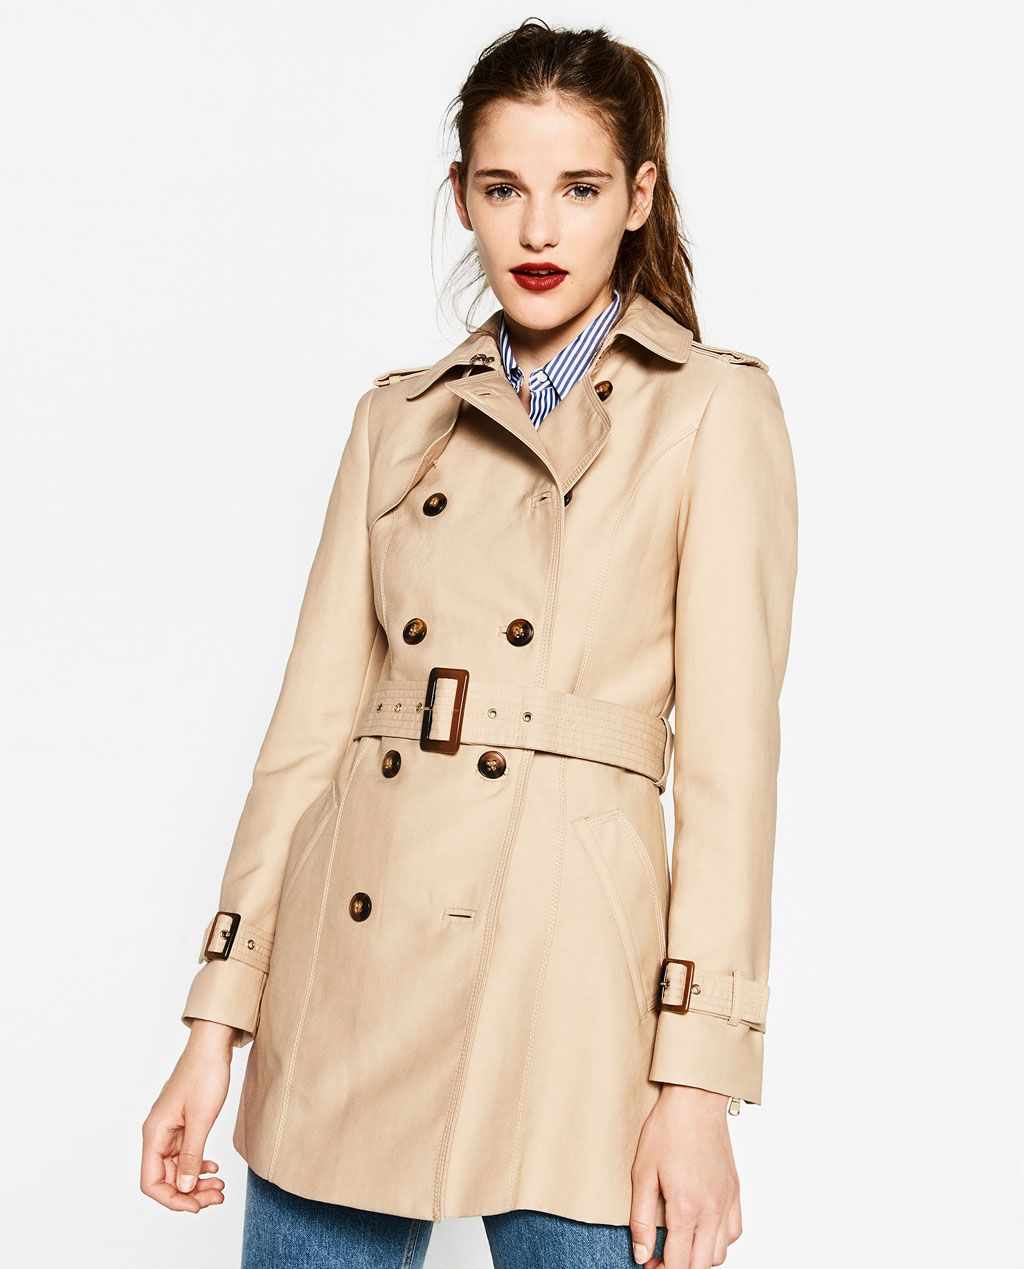 ZARA - WOMAN - WATER RESISTANT TRENCH COAT